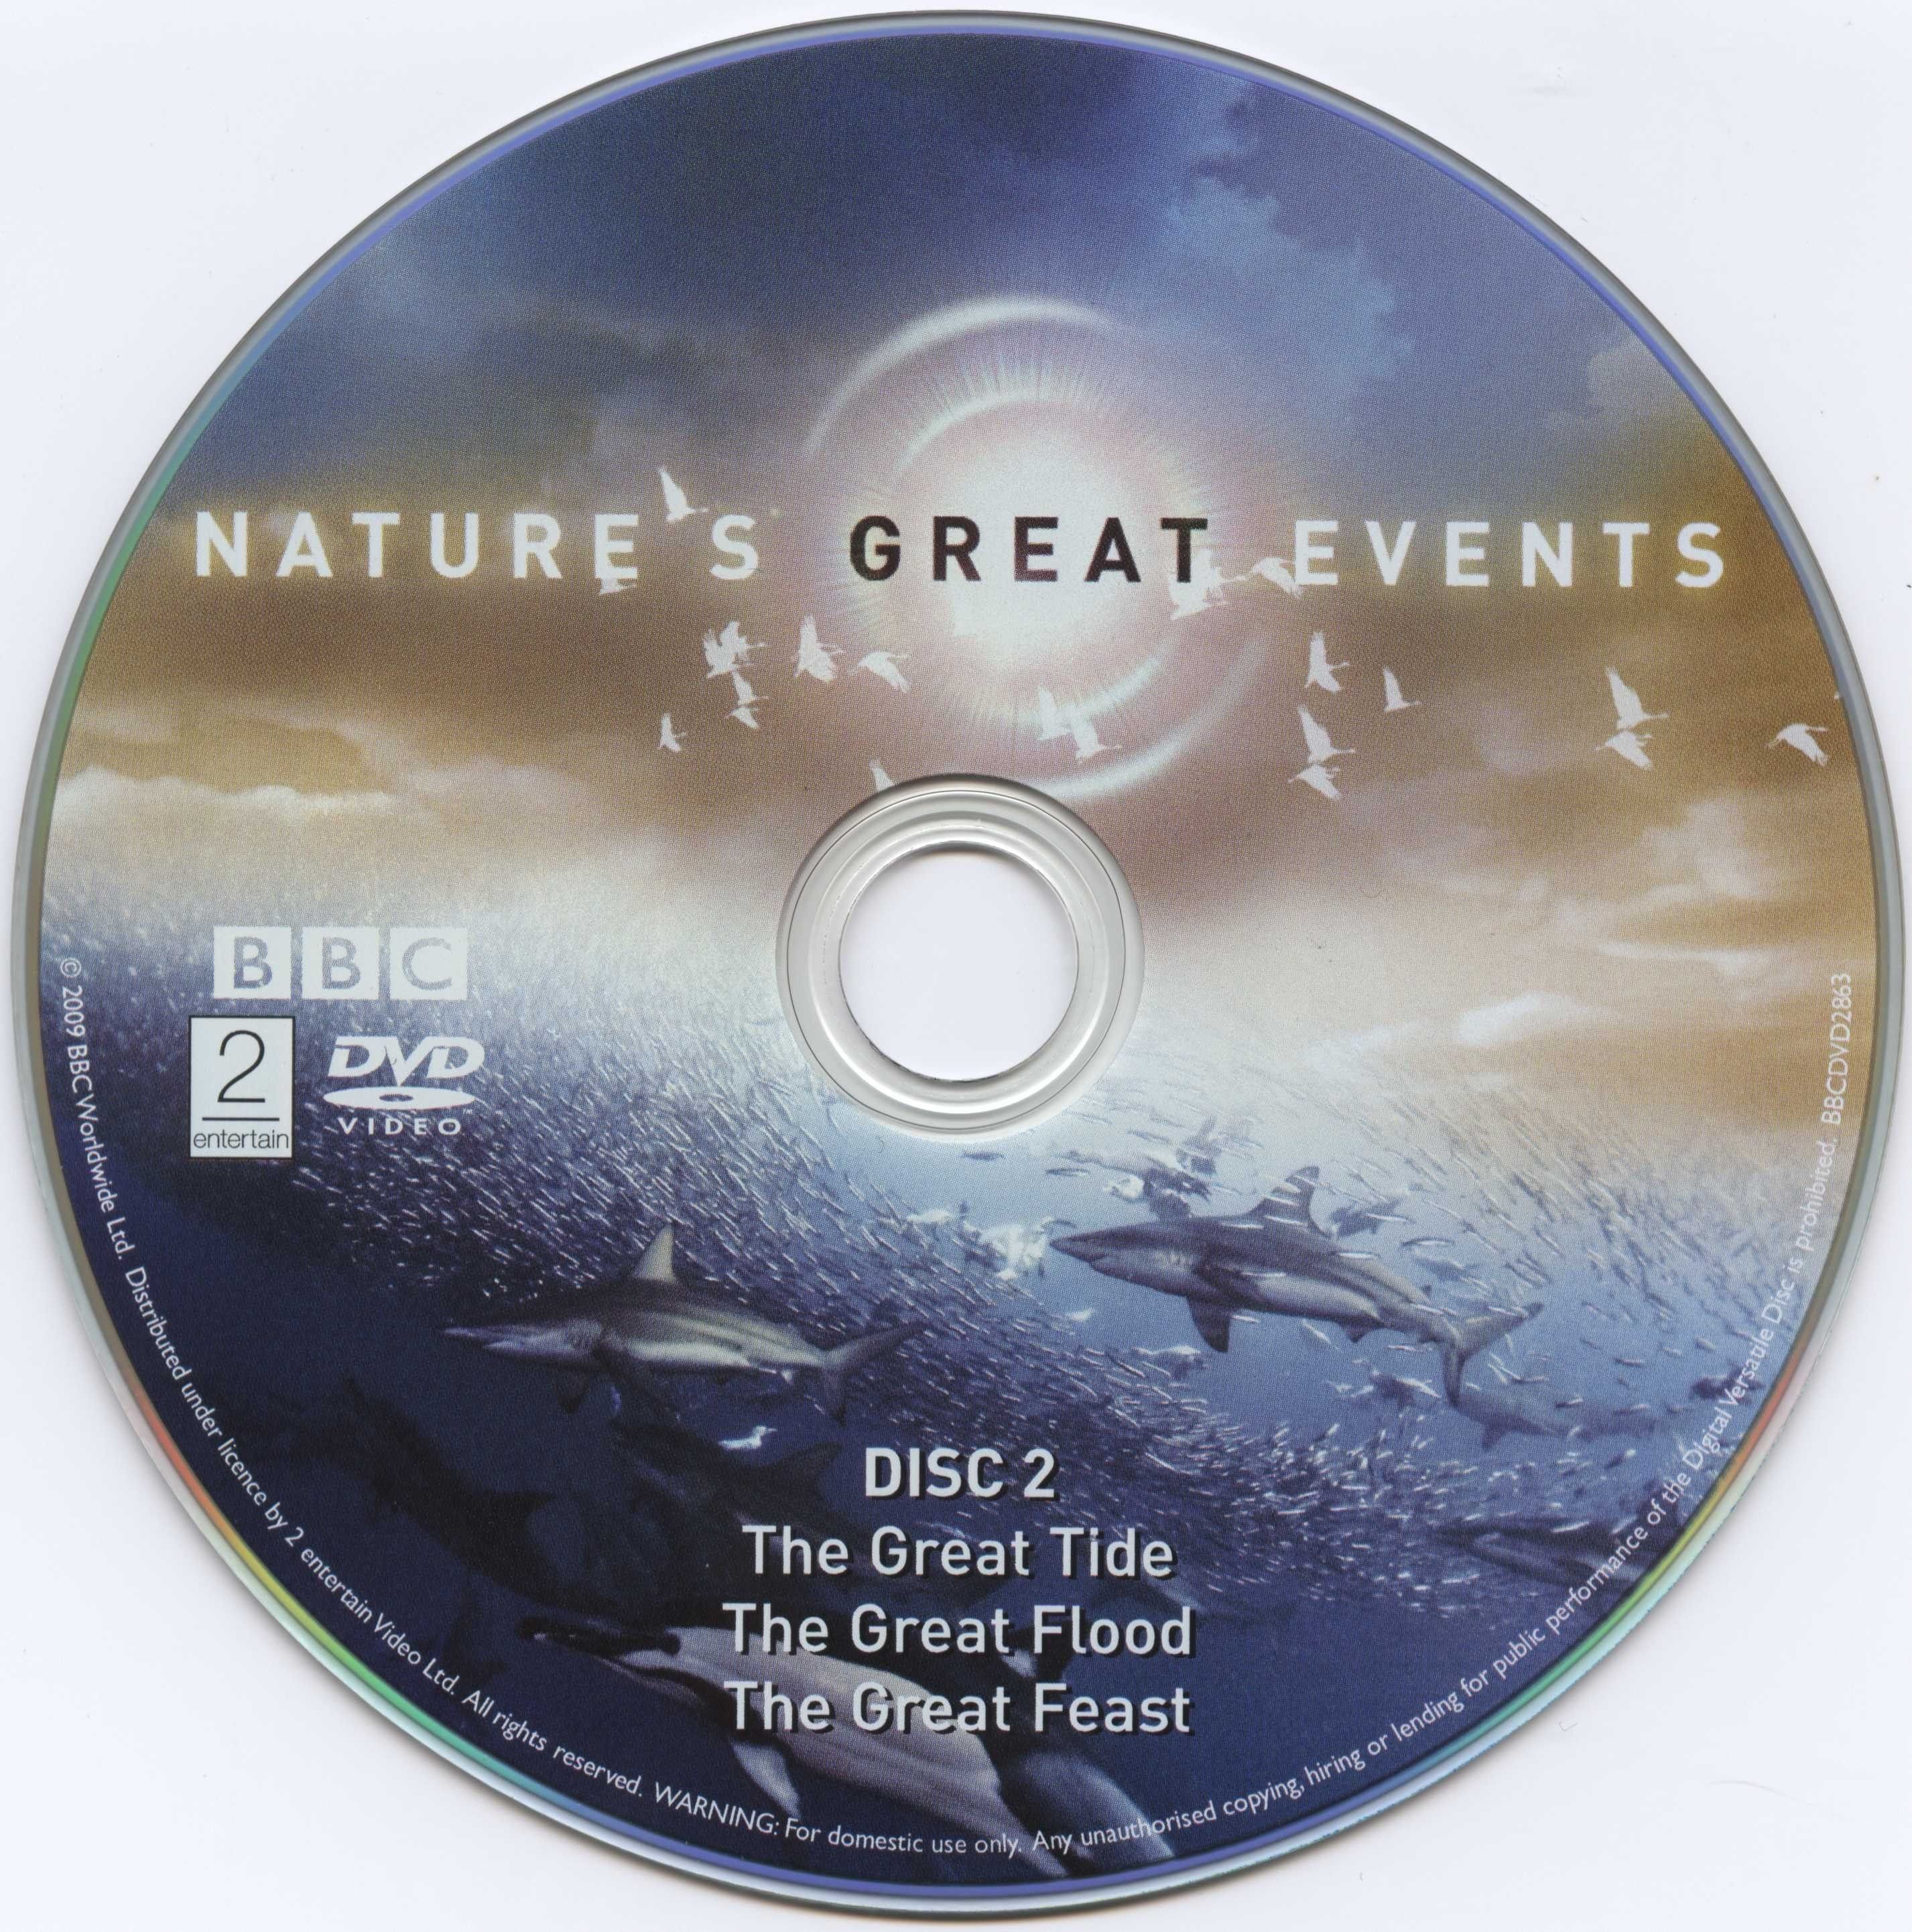 Natures Great Events Dvd Cd2 Covers Cover Century Over Working Of Digital Versatile Disc